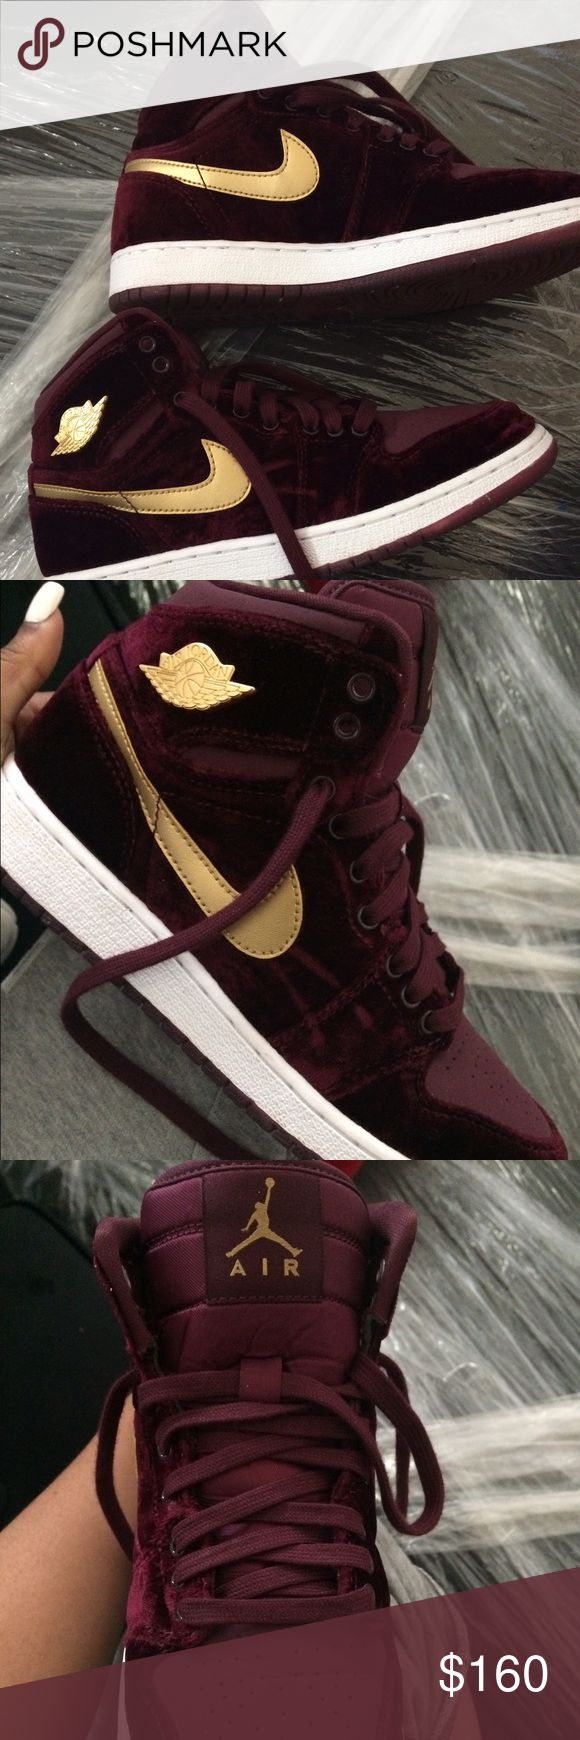 Air Jordan 1s Heiress Night Maroon Nearly perfect condition. Only slight dents at the tip of the shoe as seen in the photos above. Only have been worn five times. Been keeping these stored away in the closet for special occasions. Jordan Shoes Sneakers